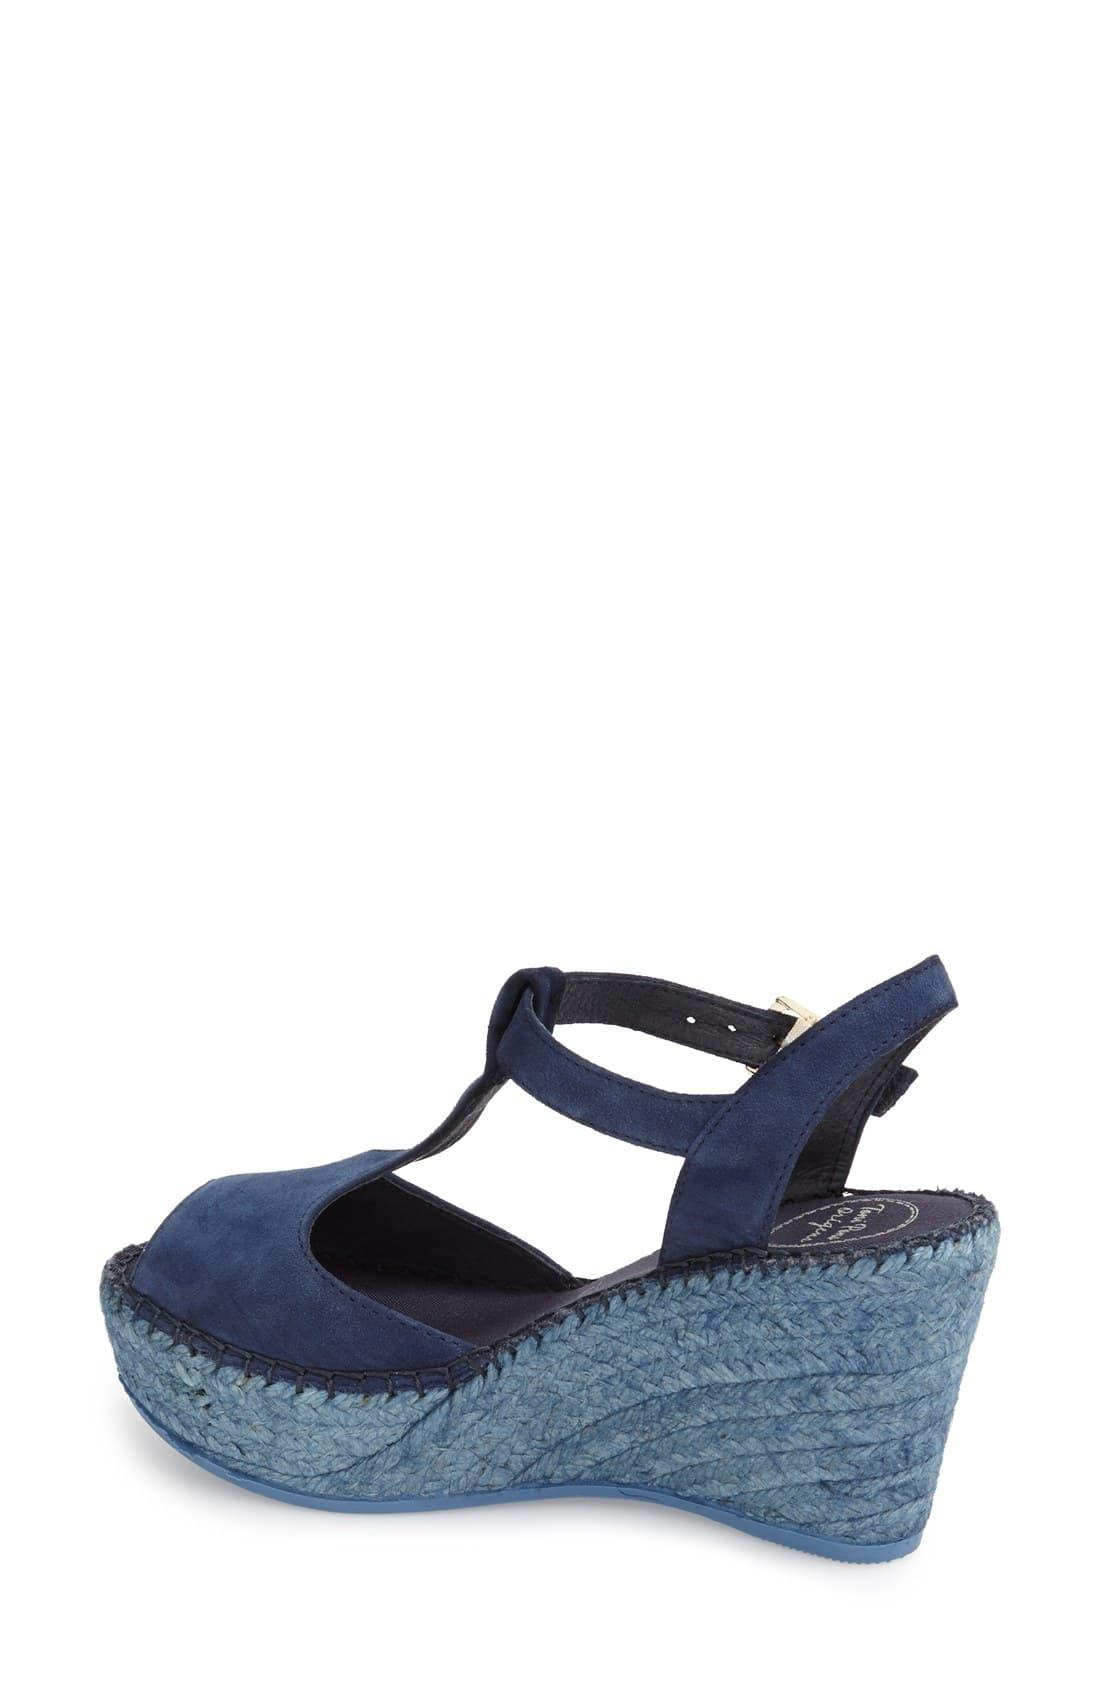 ccfed221cf4 Women's Blue Lidia T-strap Espadrille Wedge